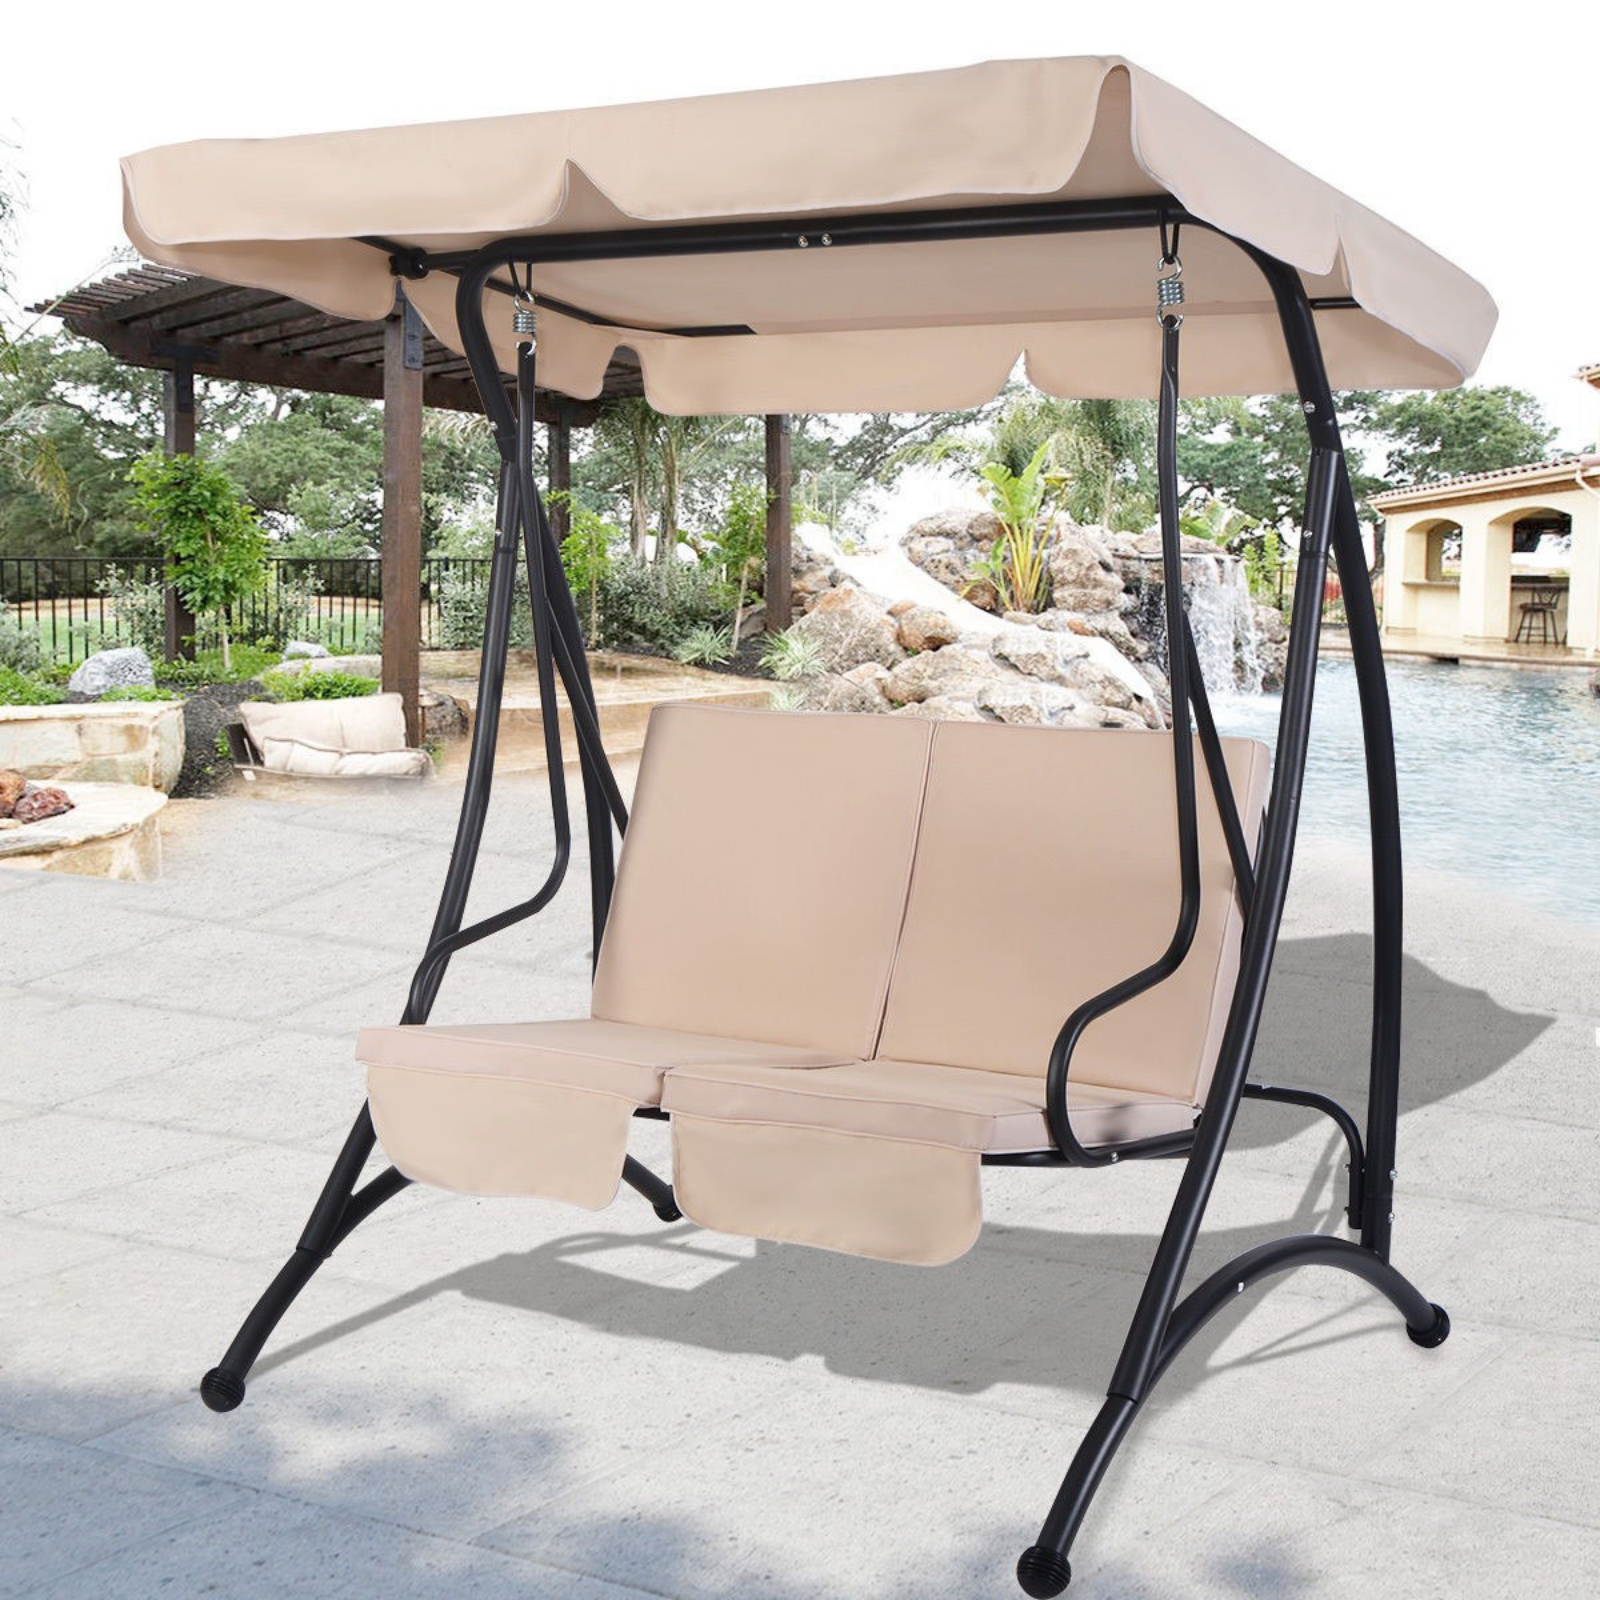 Patio Gazebo Porch Canopy Swings With Regard To Newest Outdoor Swing With Canopy 2 Person Patio Porch Steel Swing Double Hanging Seat (View 15 of 25)